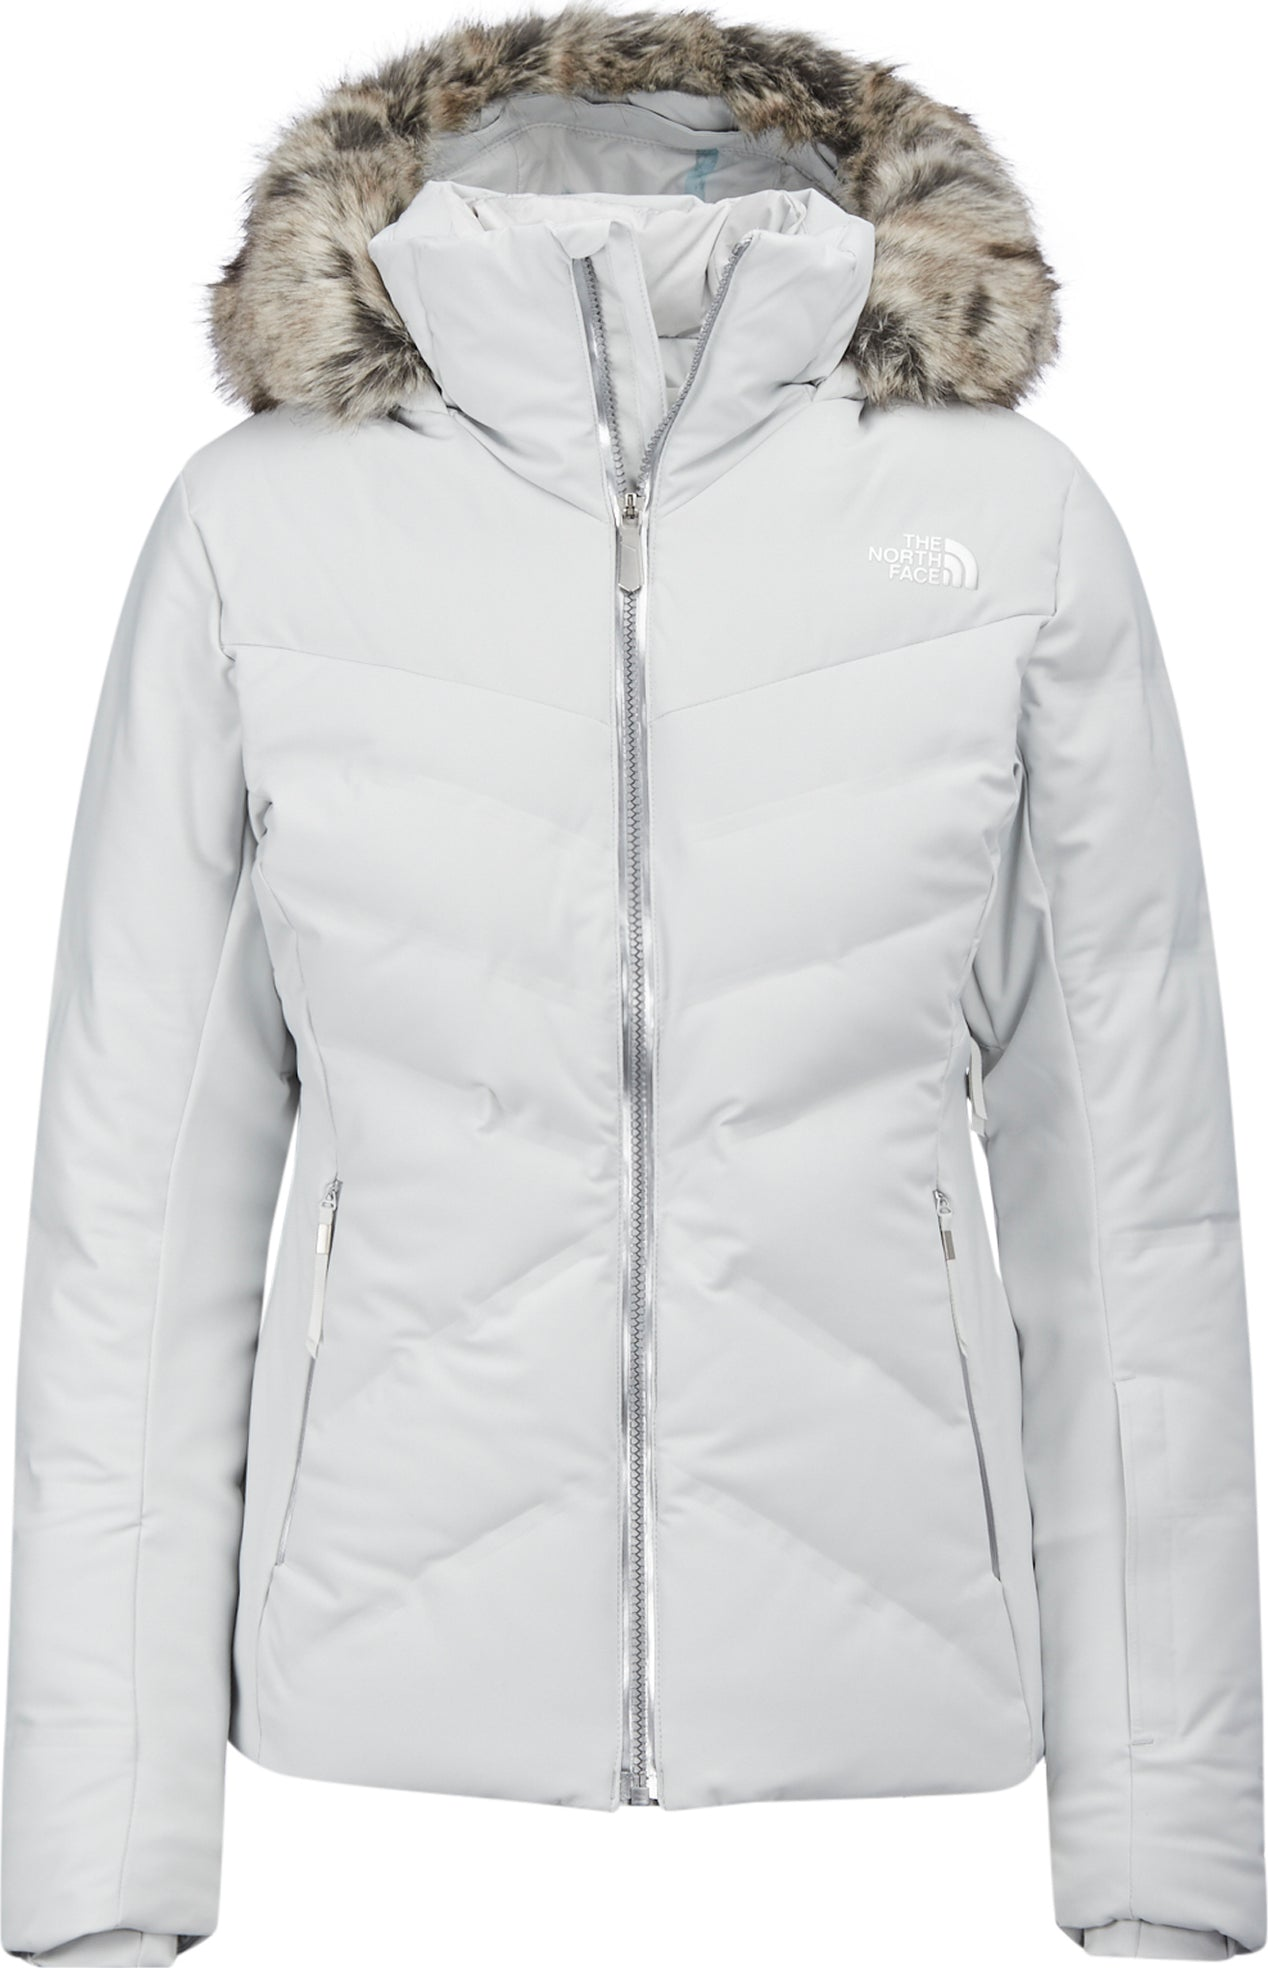 ccc7244a2b The North Face Women s Cirque Down Jacket